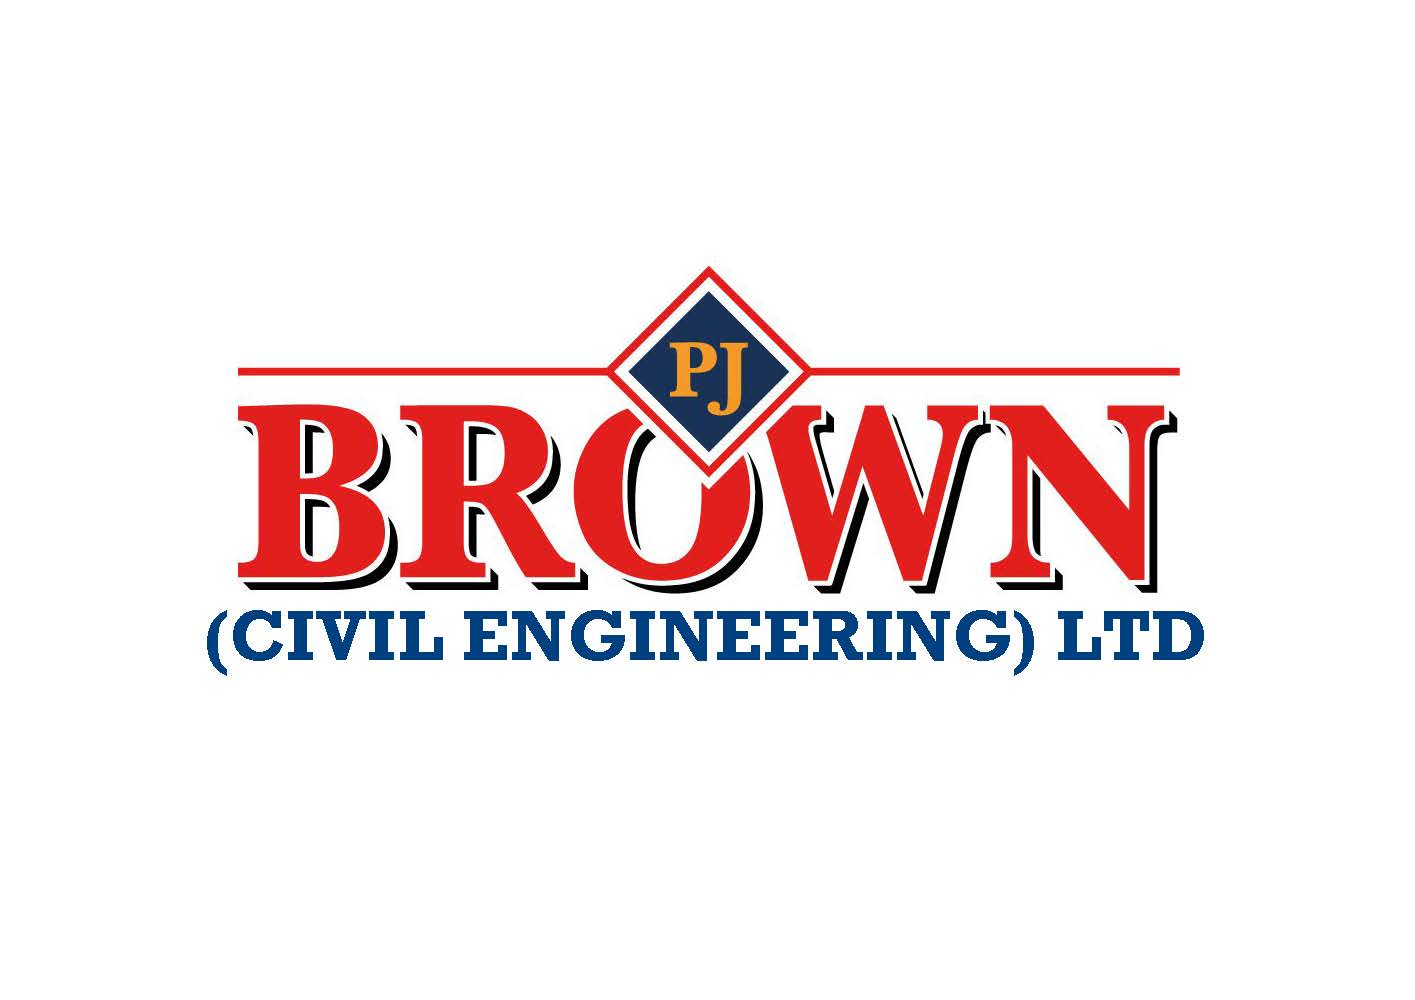 P J Brown (Civil Engineering)Ltd